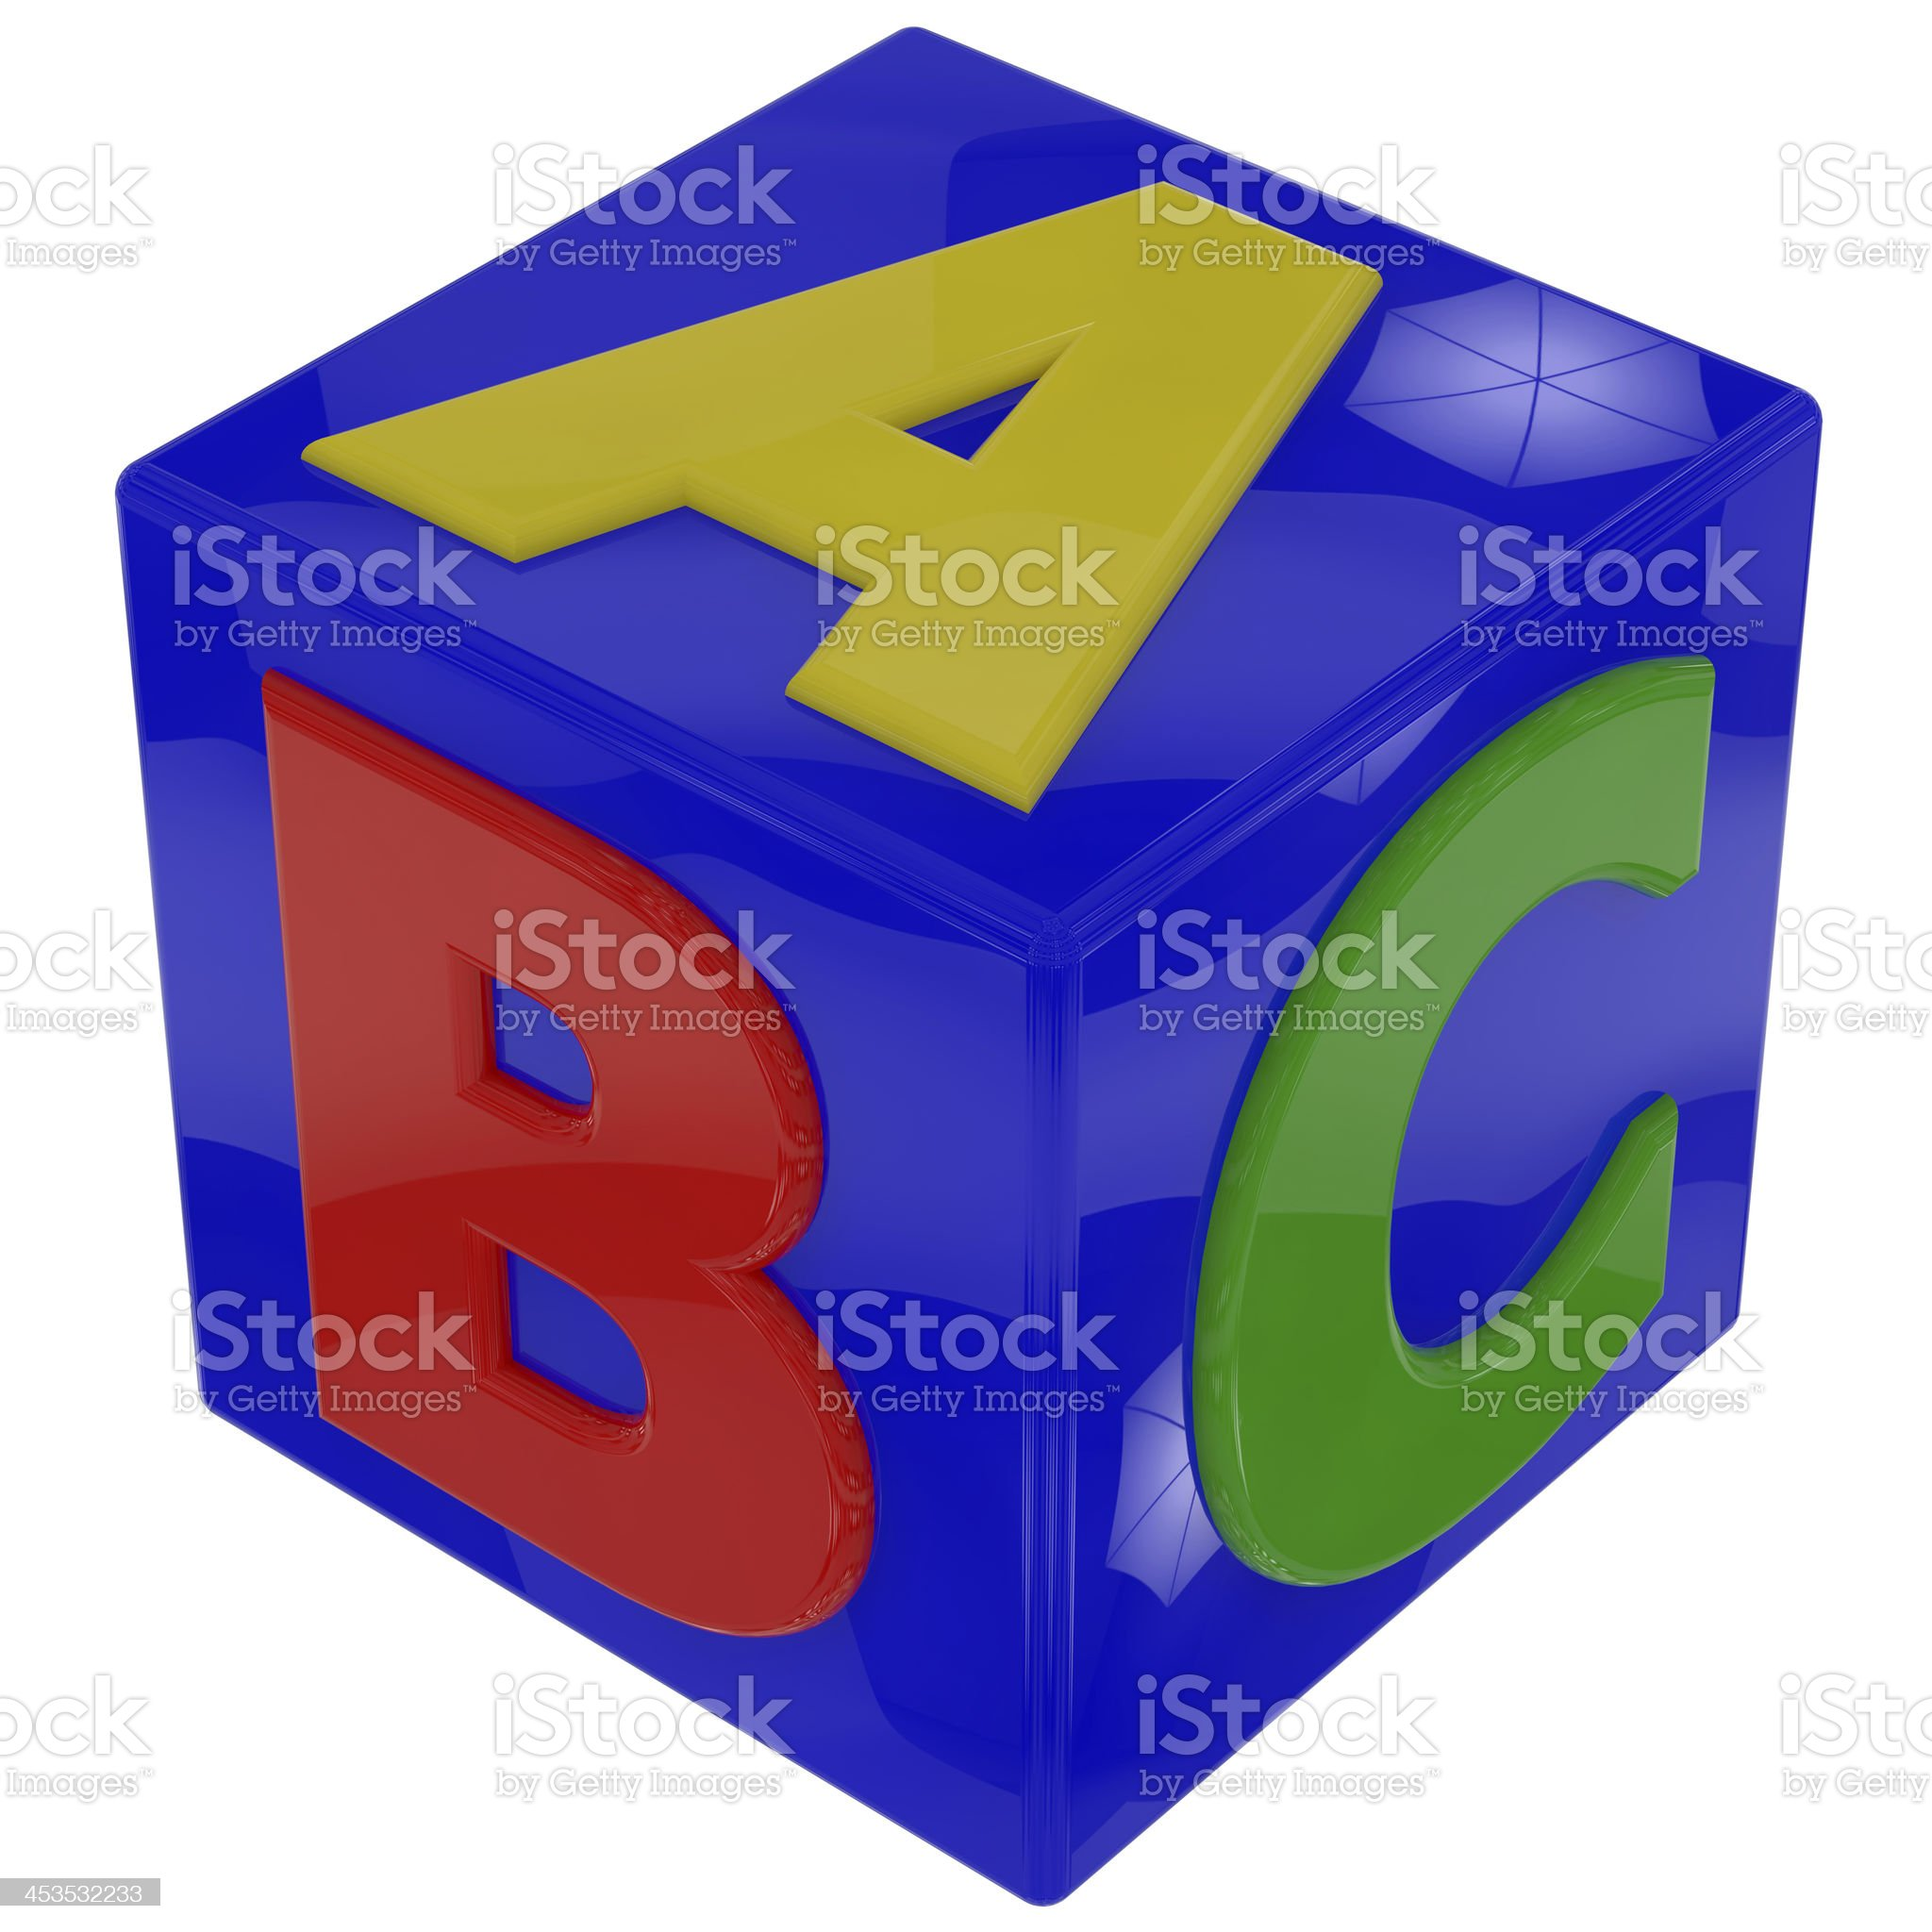 letters cube royalty-free stock photo